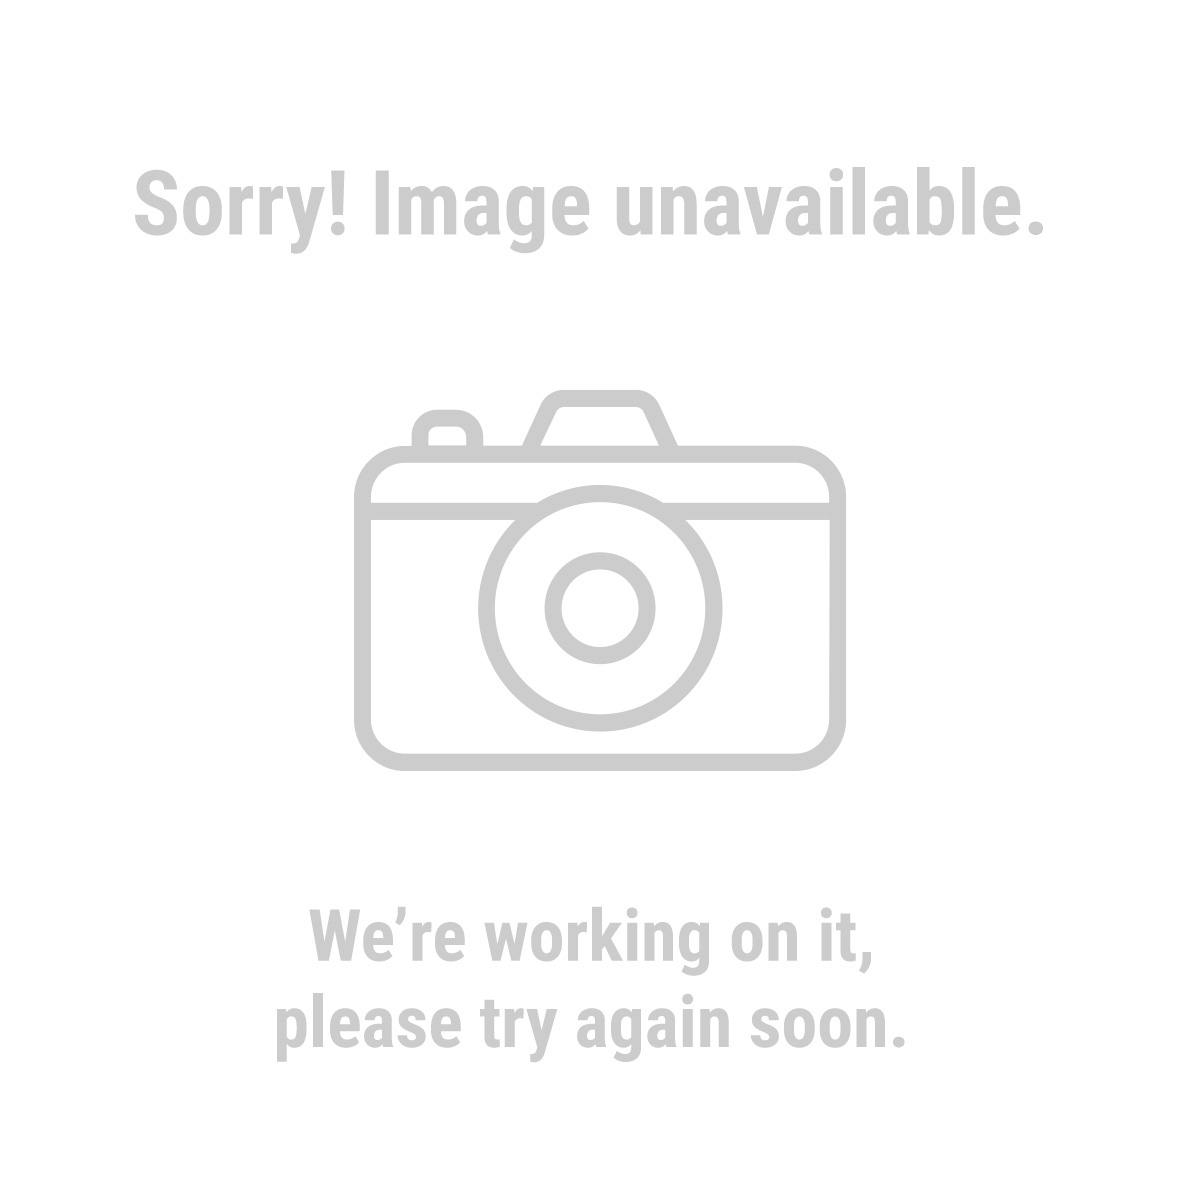 62810 Jumbo Magnifying Glass